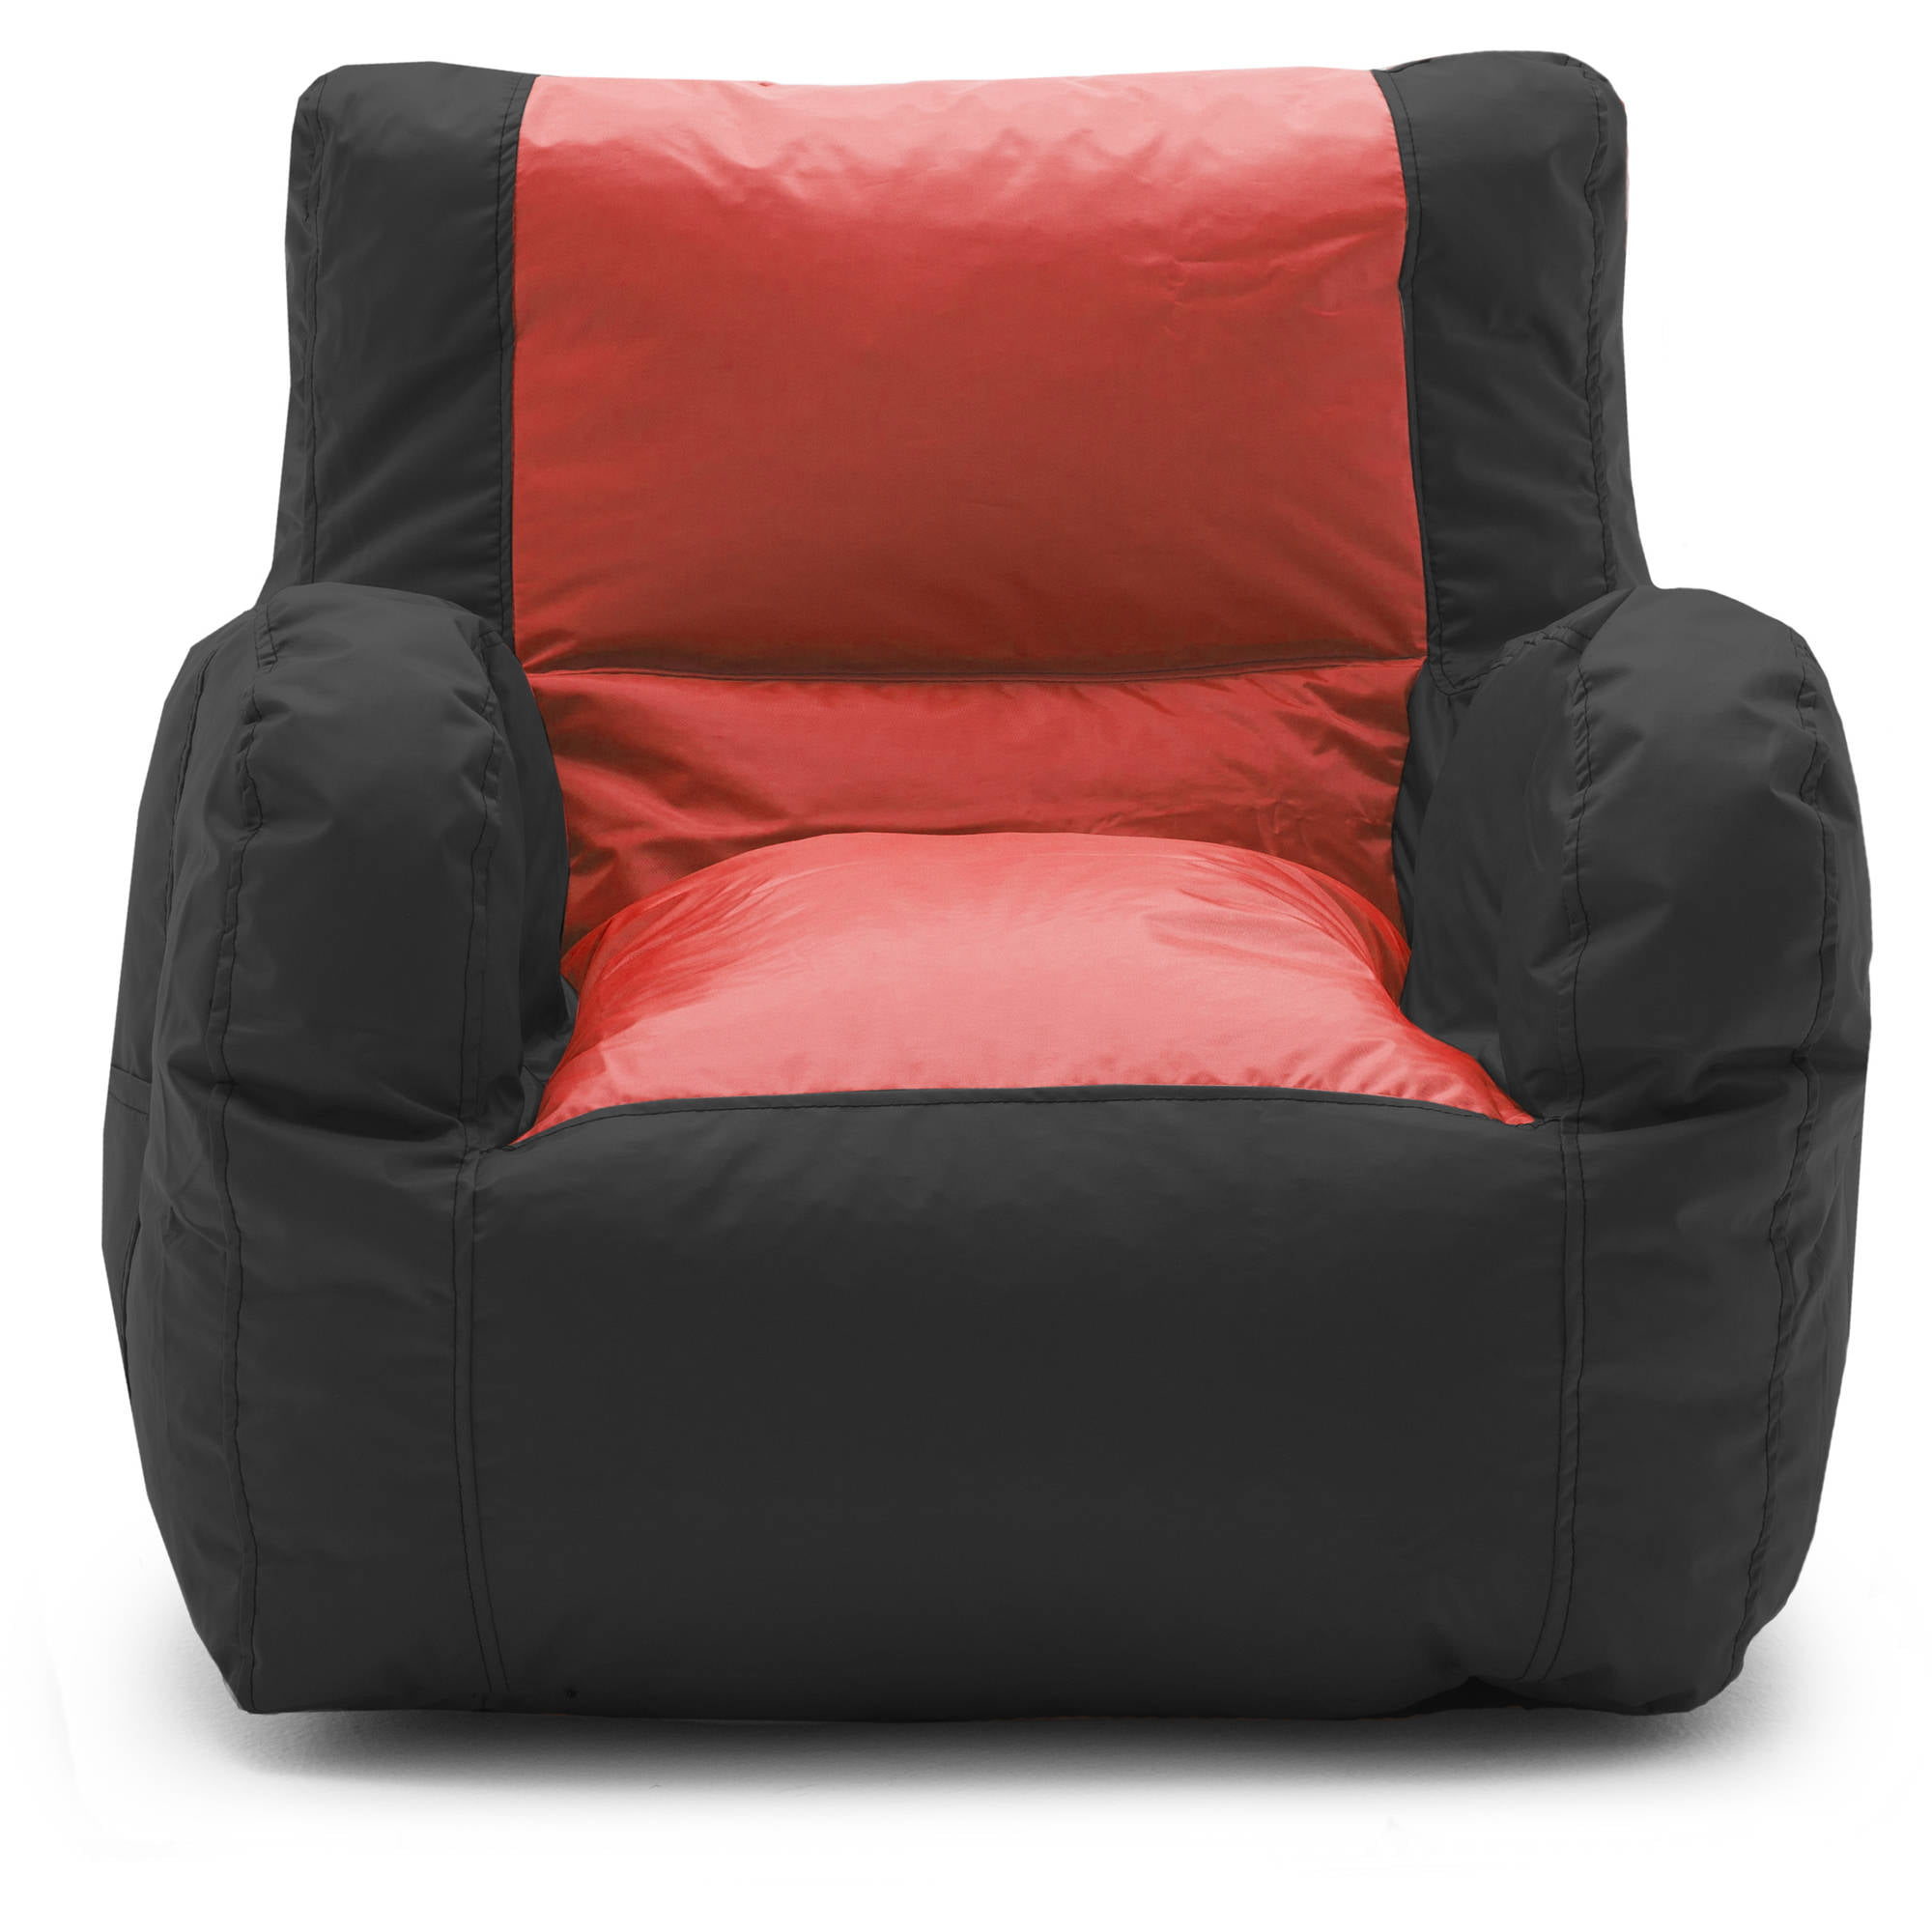 Big Joe Duo Chair Black Red Engine Walmart Com